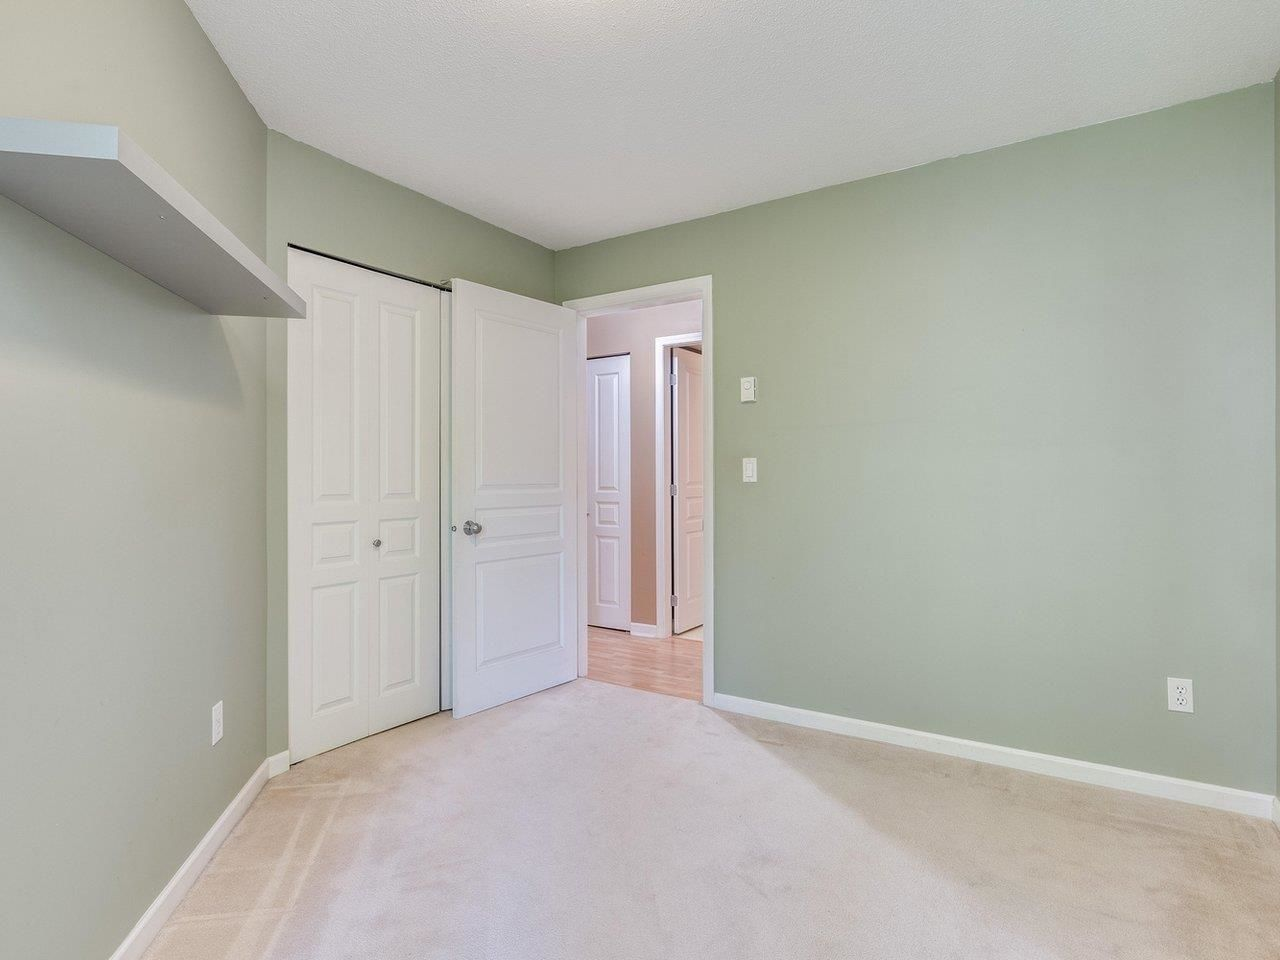 """Photo 21: Photos: 320 1252 TOWN CENTRE Boulevard in Coquitlam: Canyon Springs Condo for sale in """"The Kennedy"""" : MLS®# R2595291"""